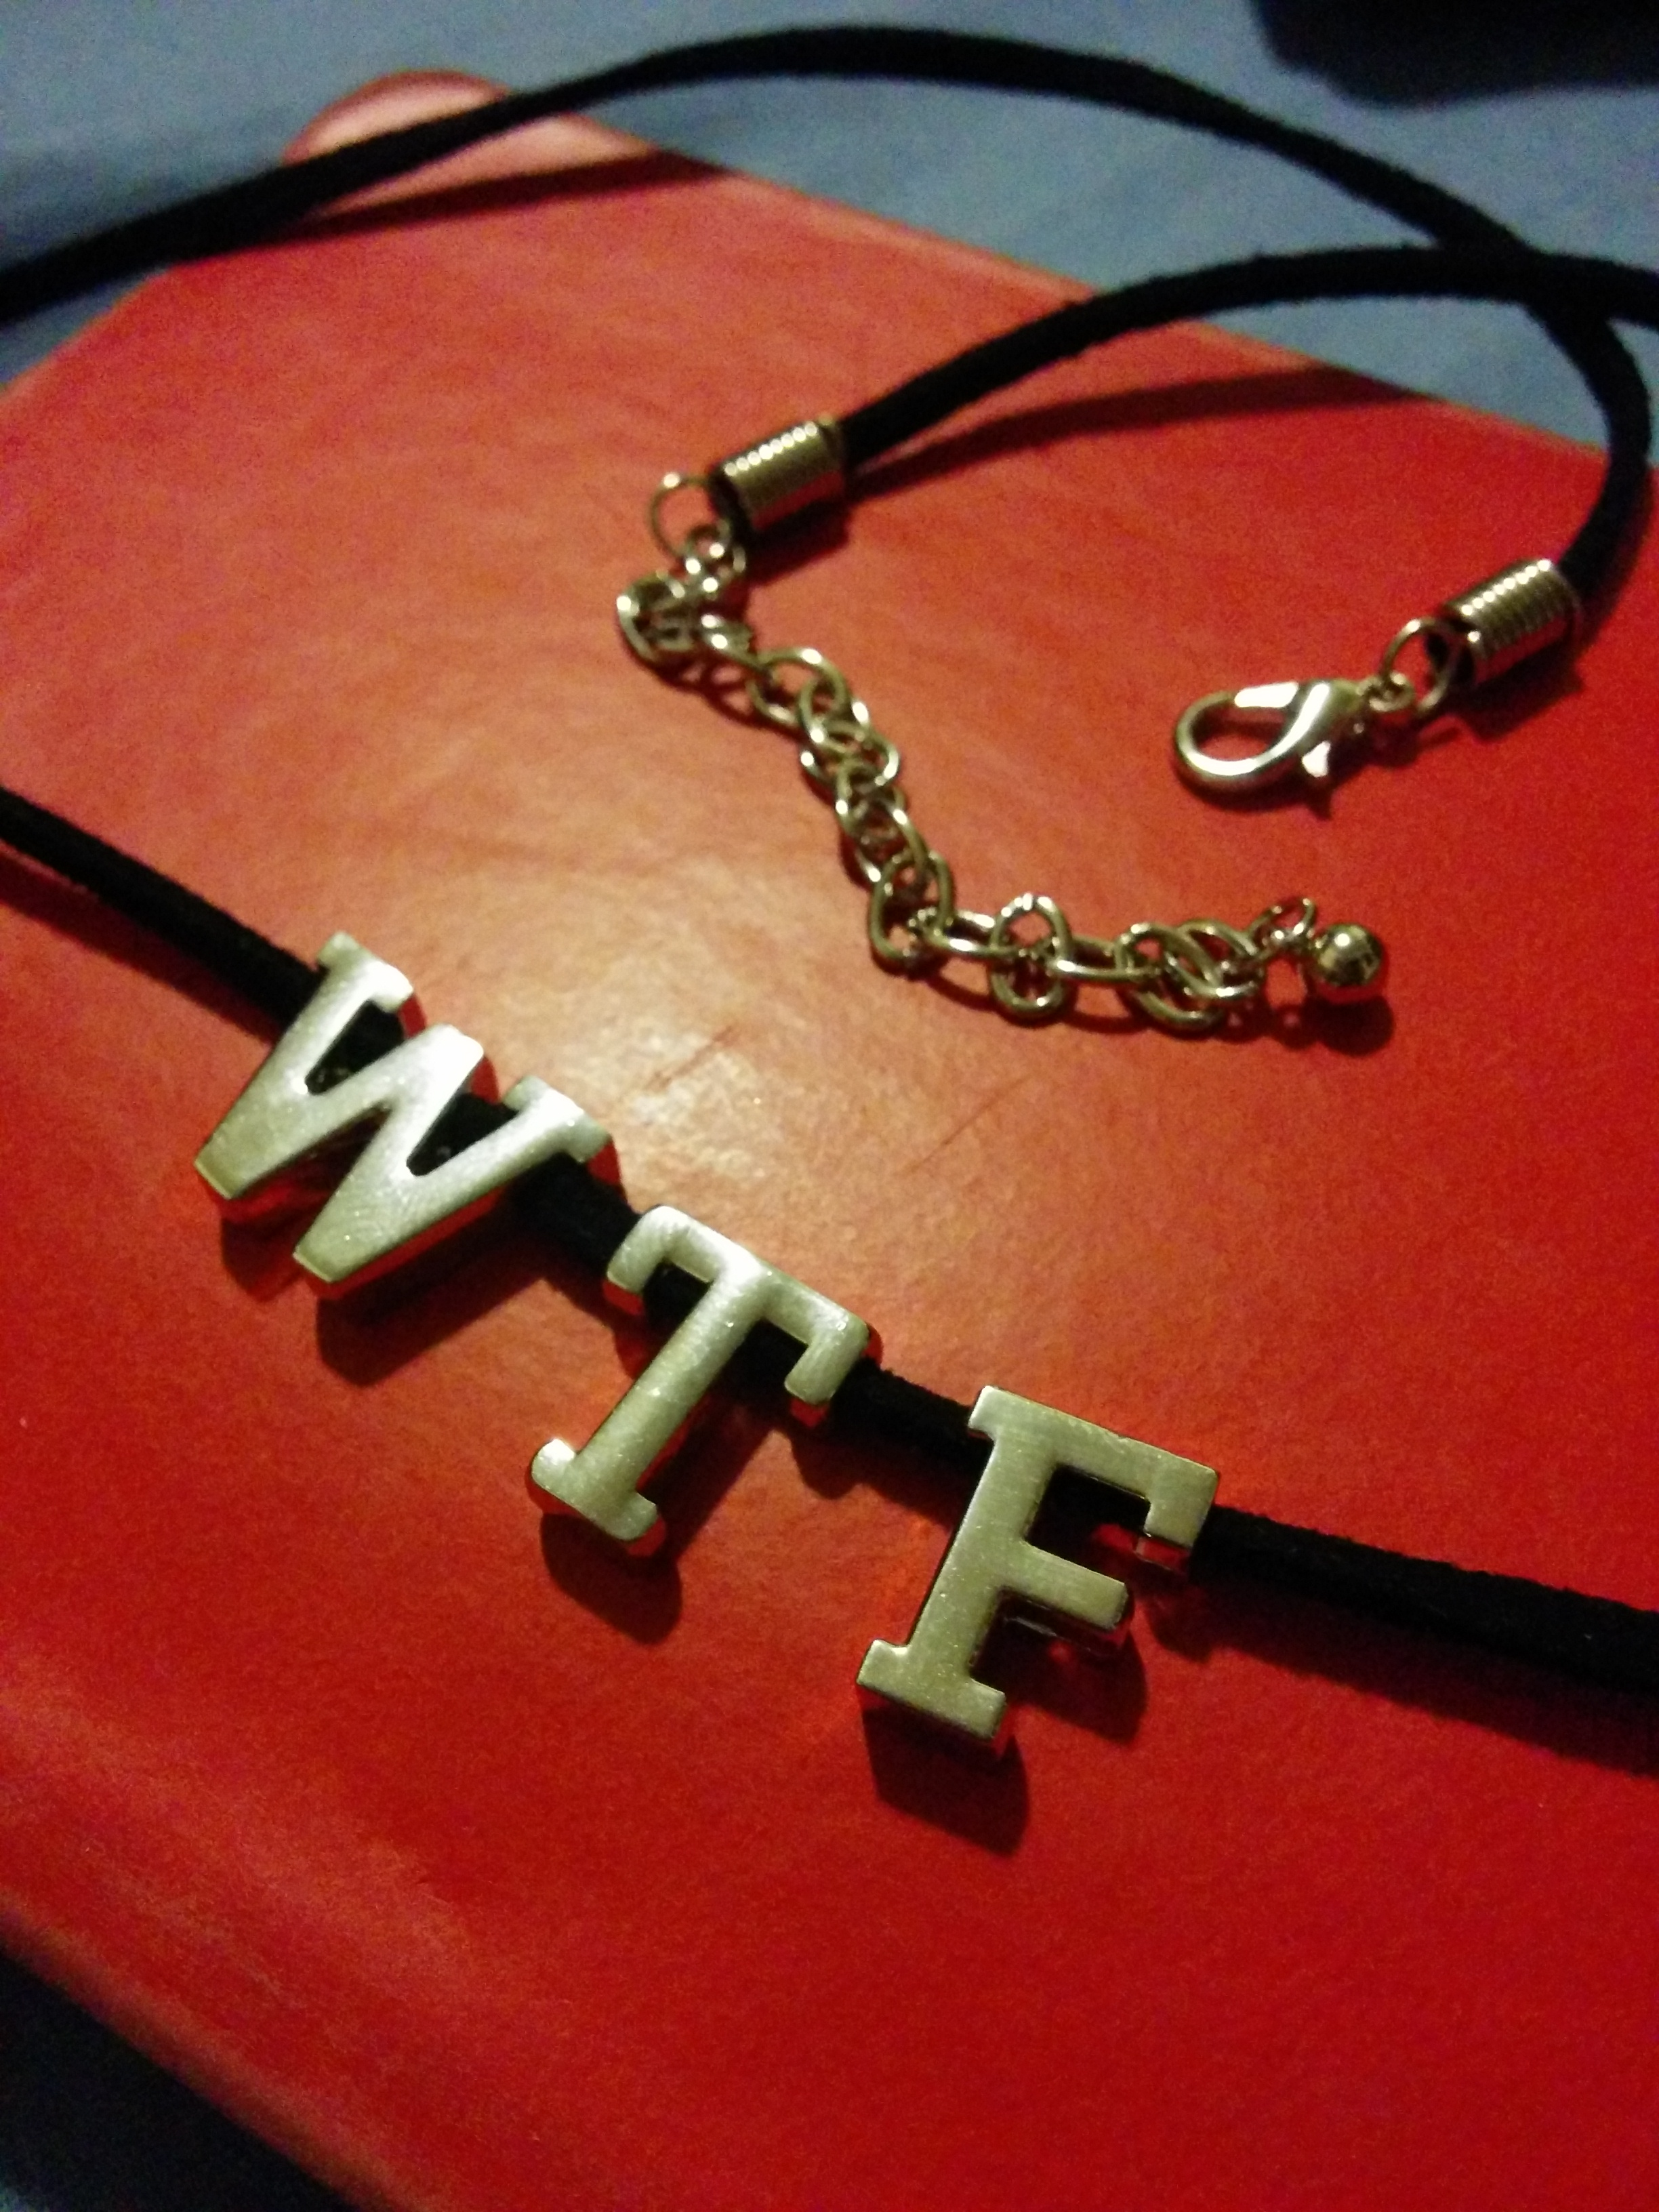 Necklace with the letters WTF on it.